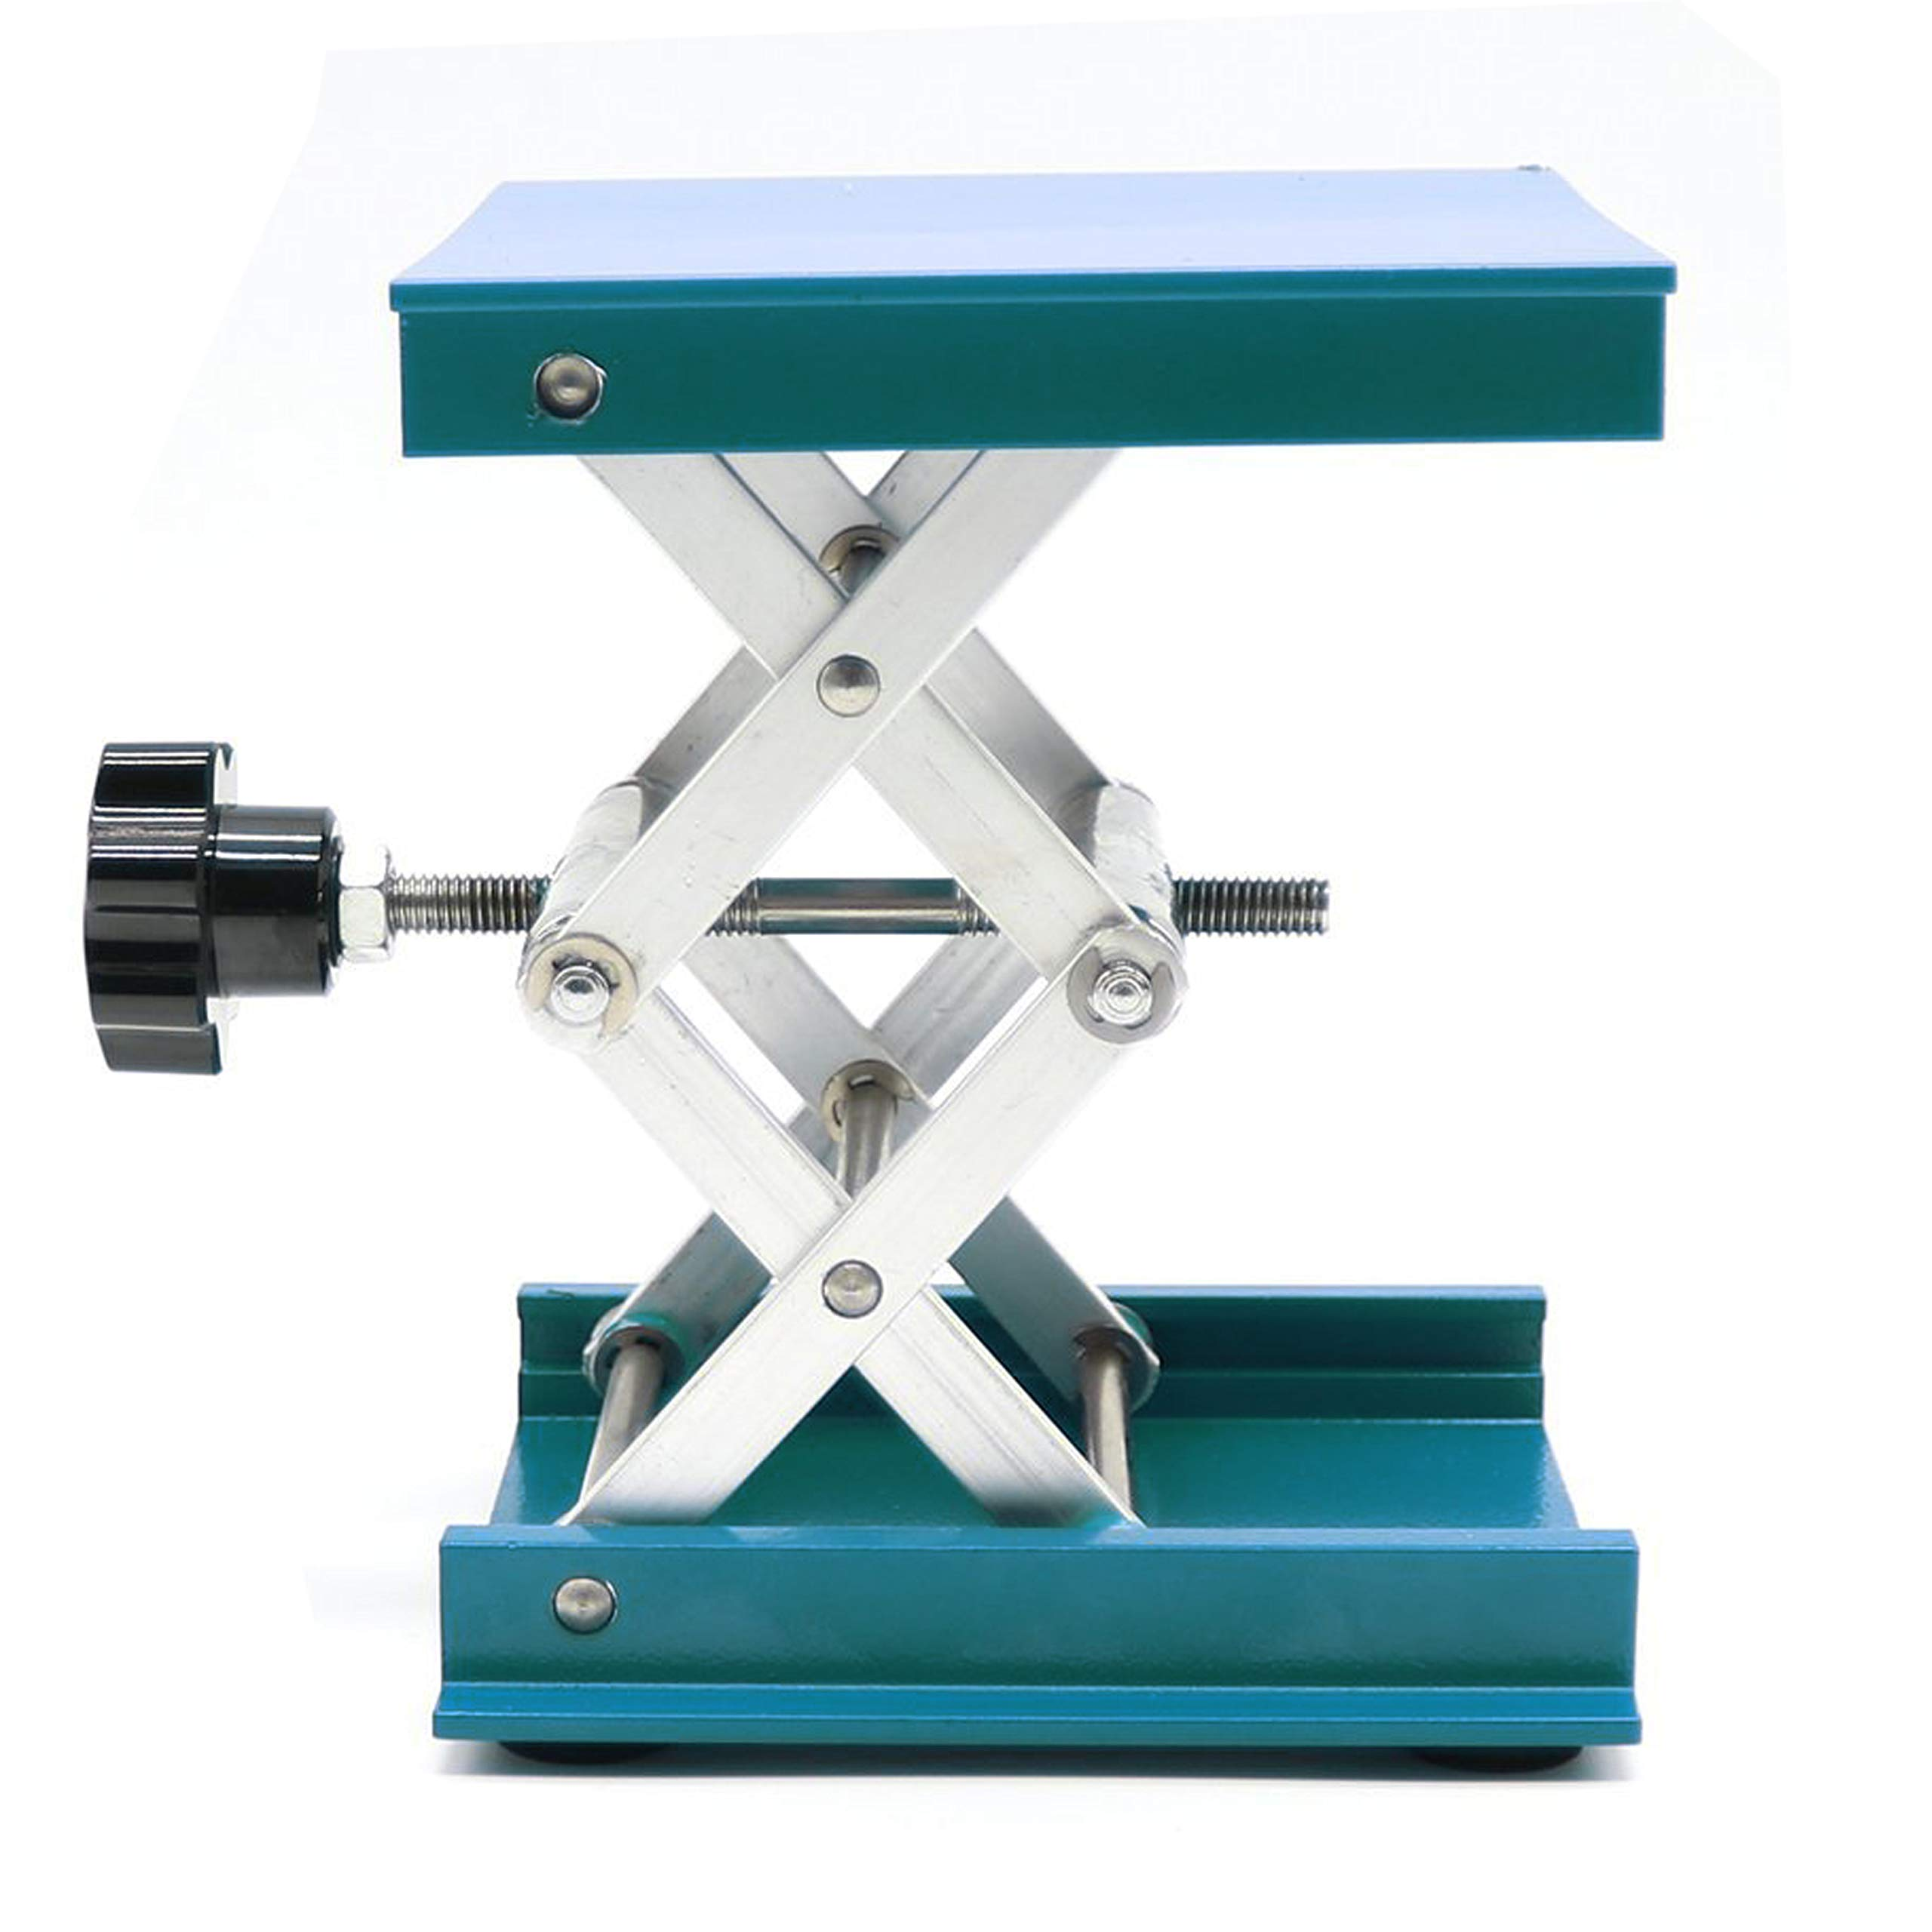 OESS Lift Table Lab Stand Lifter Scientific Scissor Lifting Jack Platform 4''X 4'' Aluminium Oxide